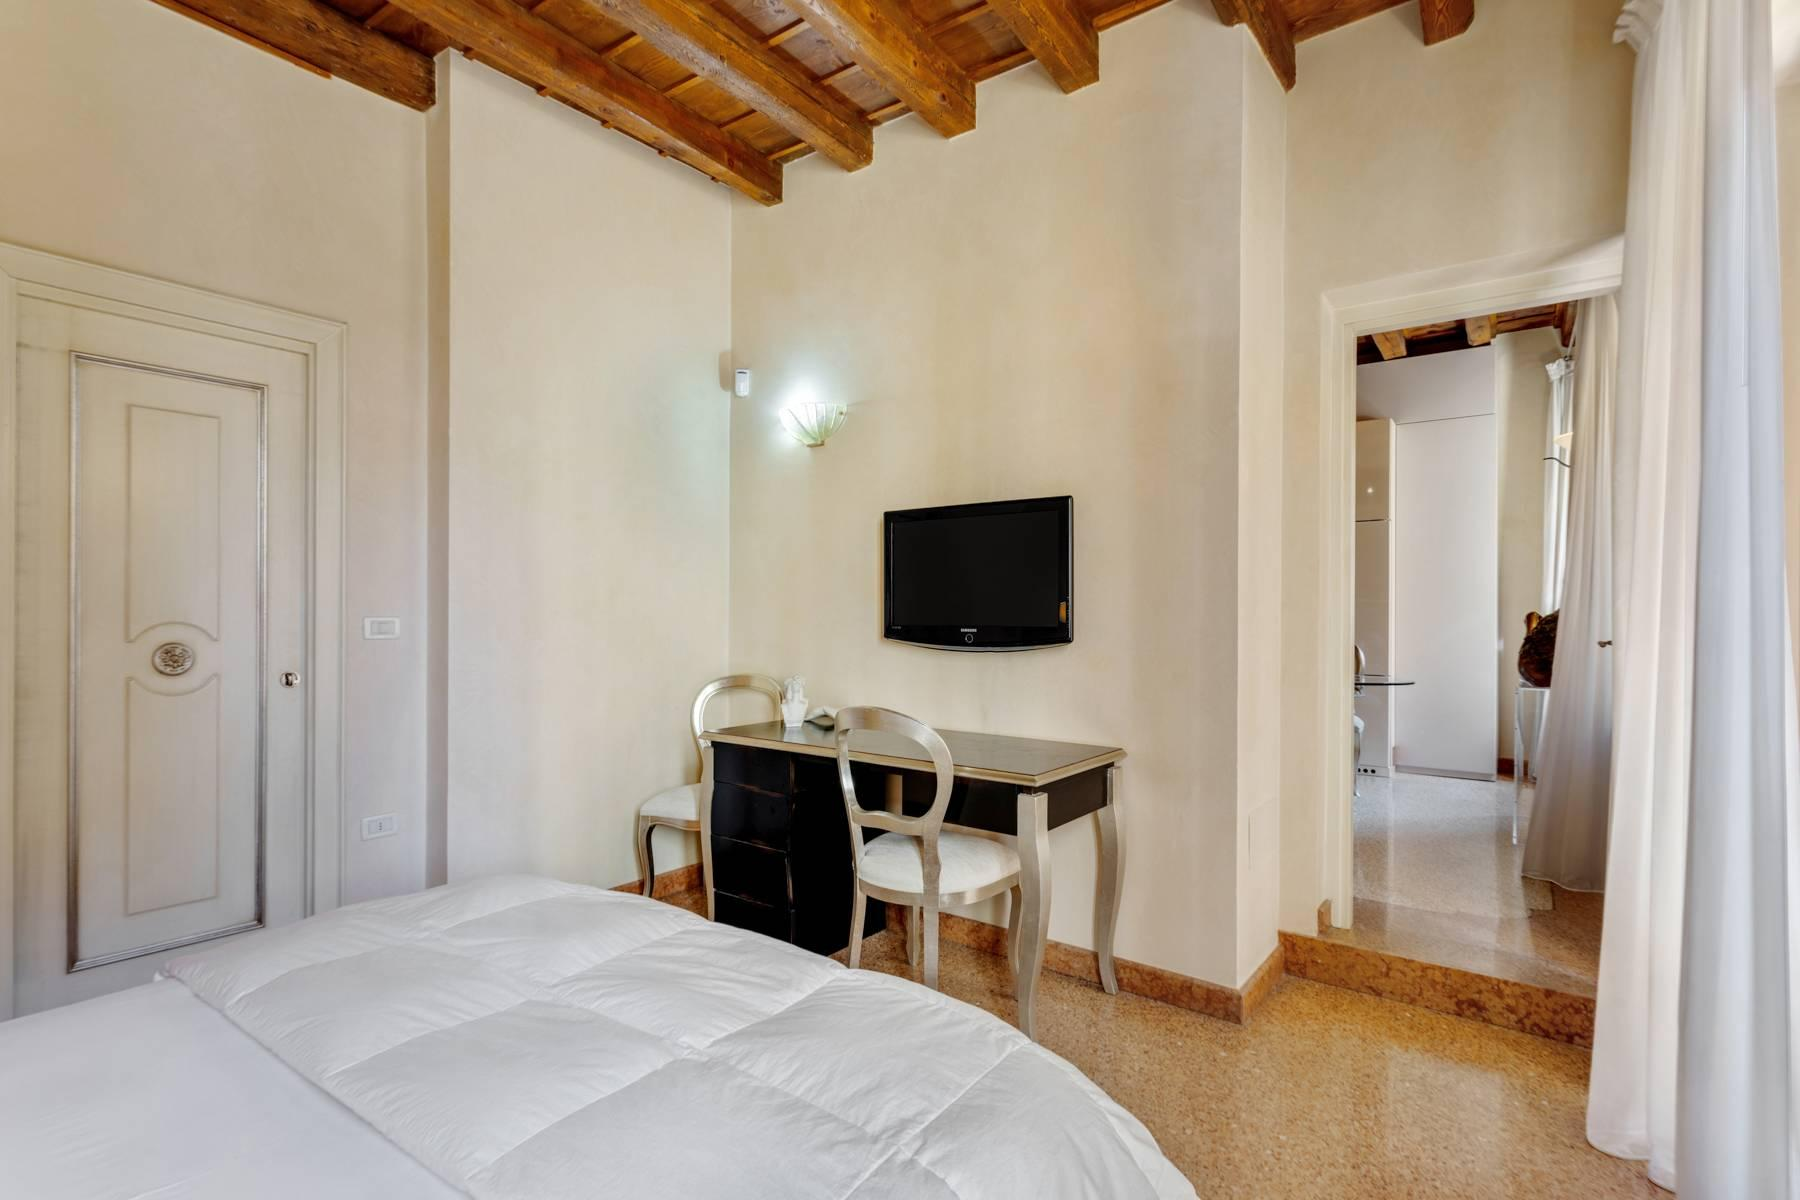 Exquisite apartment just few steps away from Piazza delle Erbe - 14